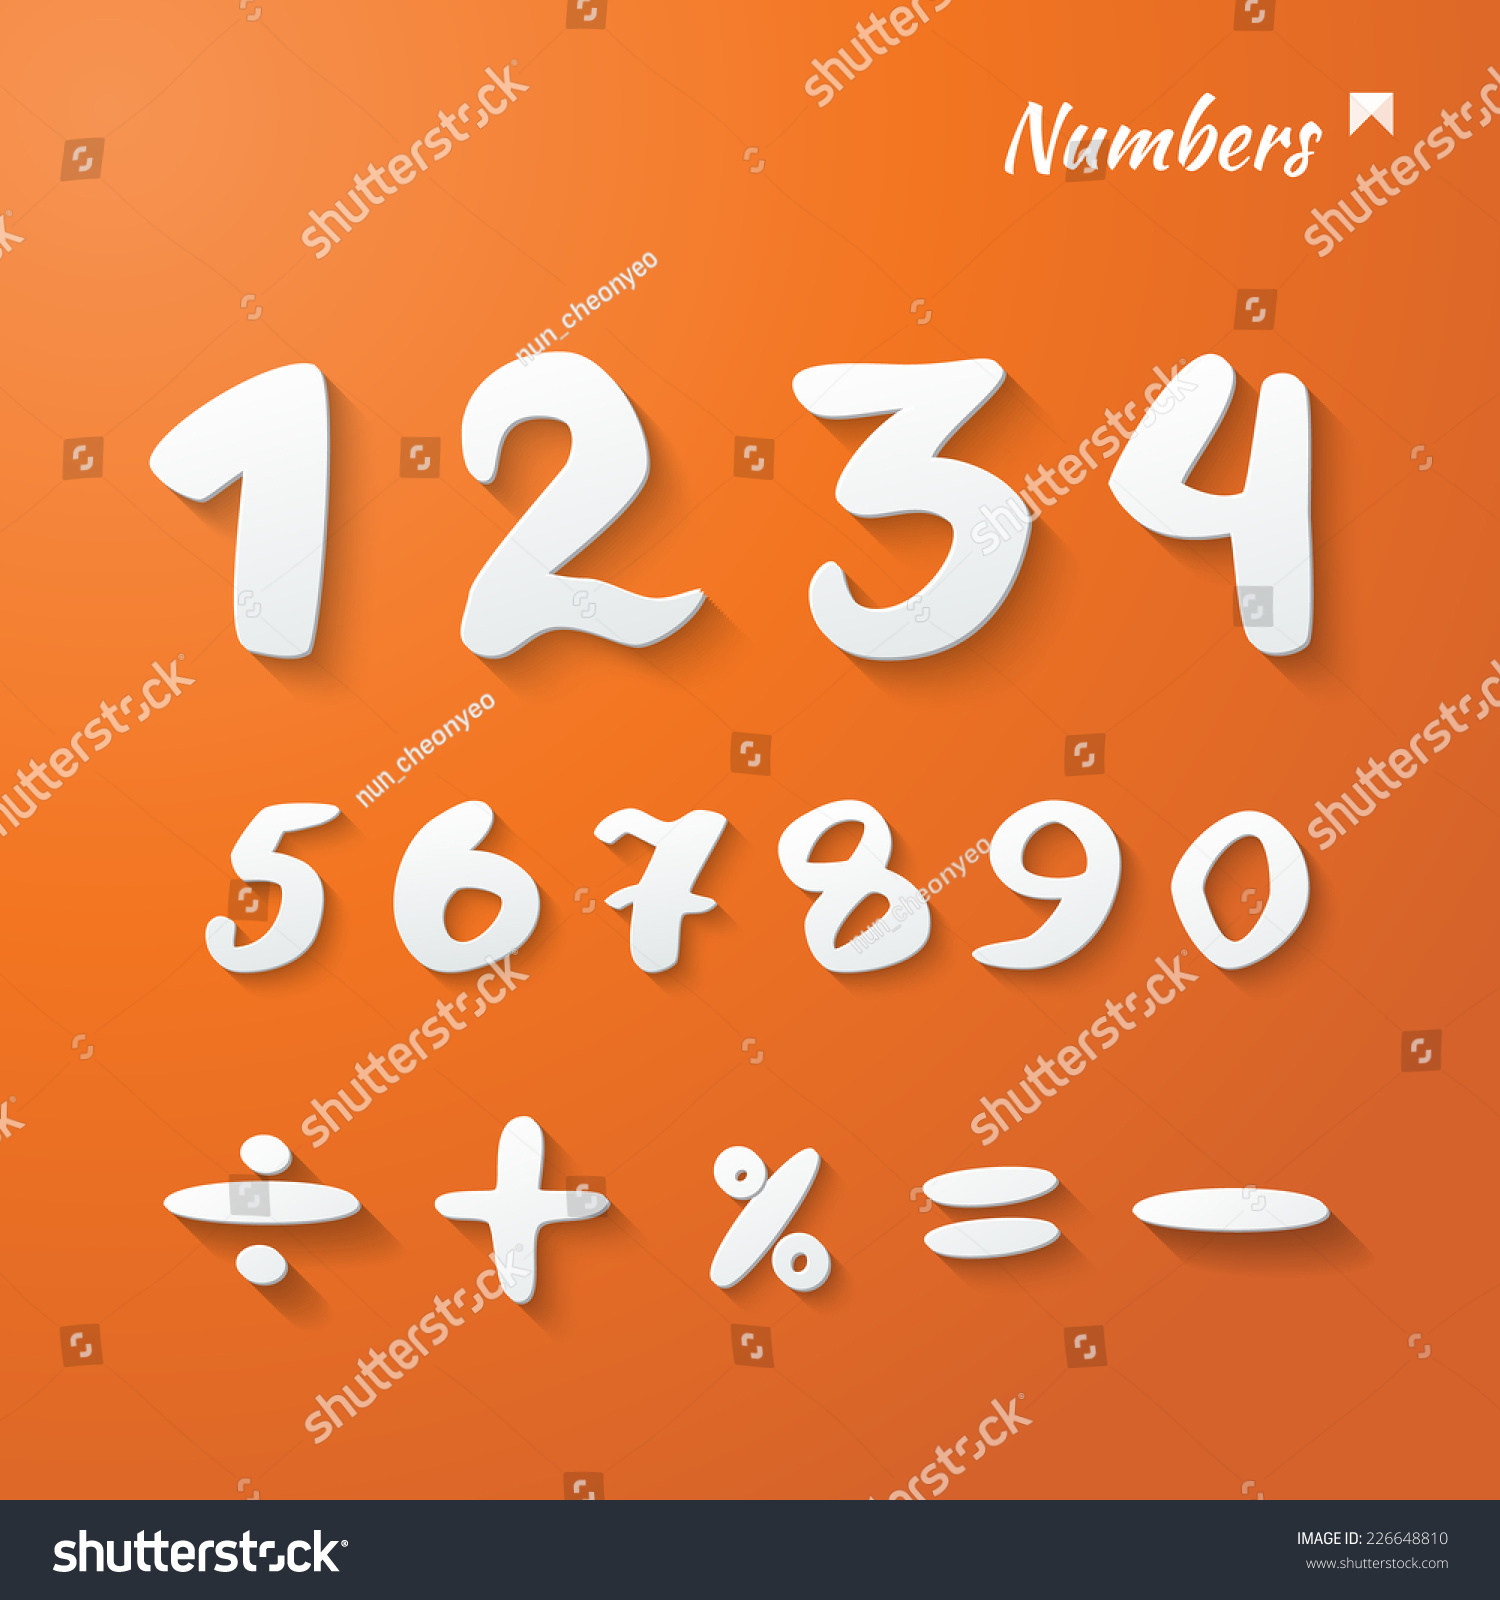 Vector numbers mathematical signs hand lettering stock vector vector numbers and mathematical signs hand lettering paper 3d style orange background with shadows biocorpaavc